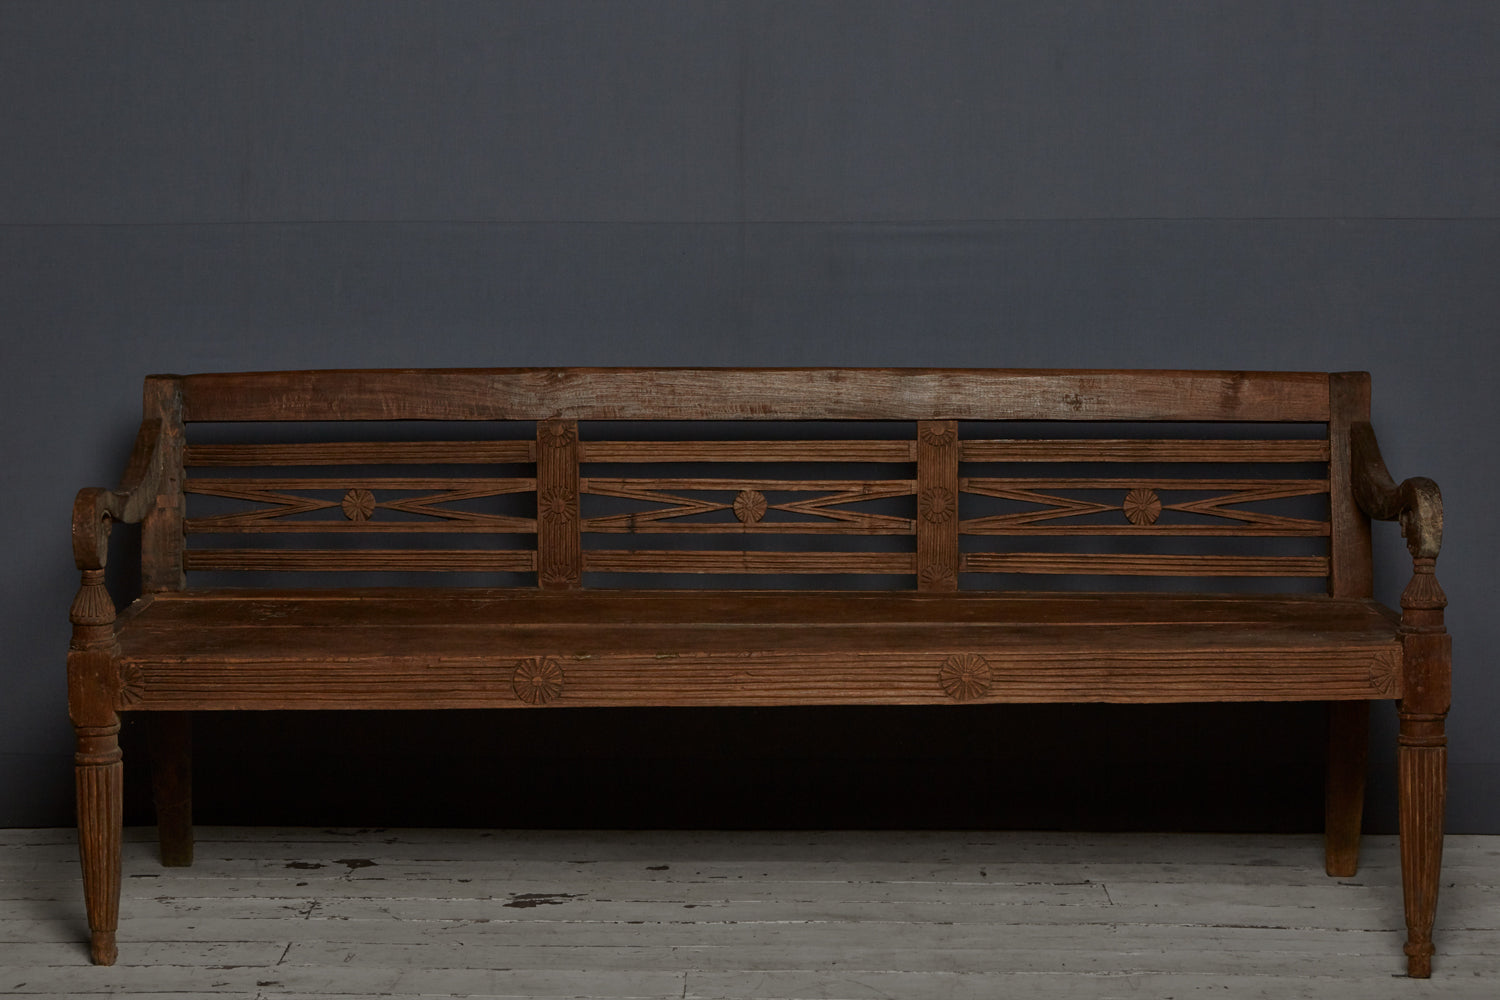 Raffles Style Dutch Colonial Teak Bench from Jakarta